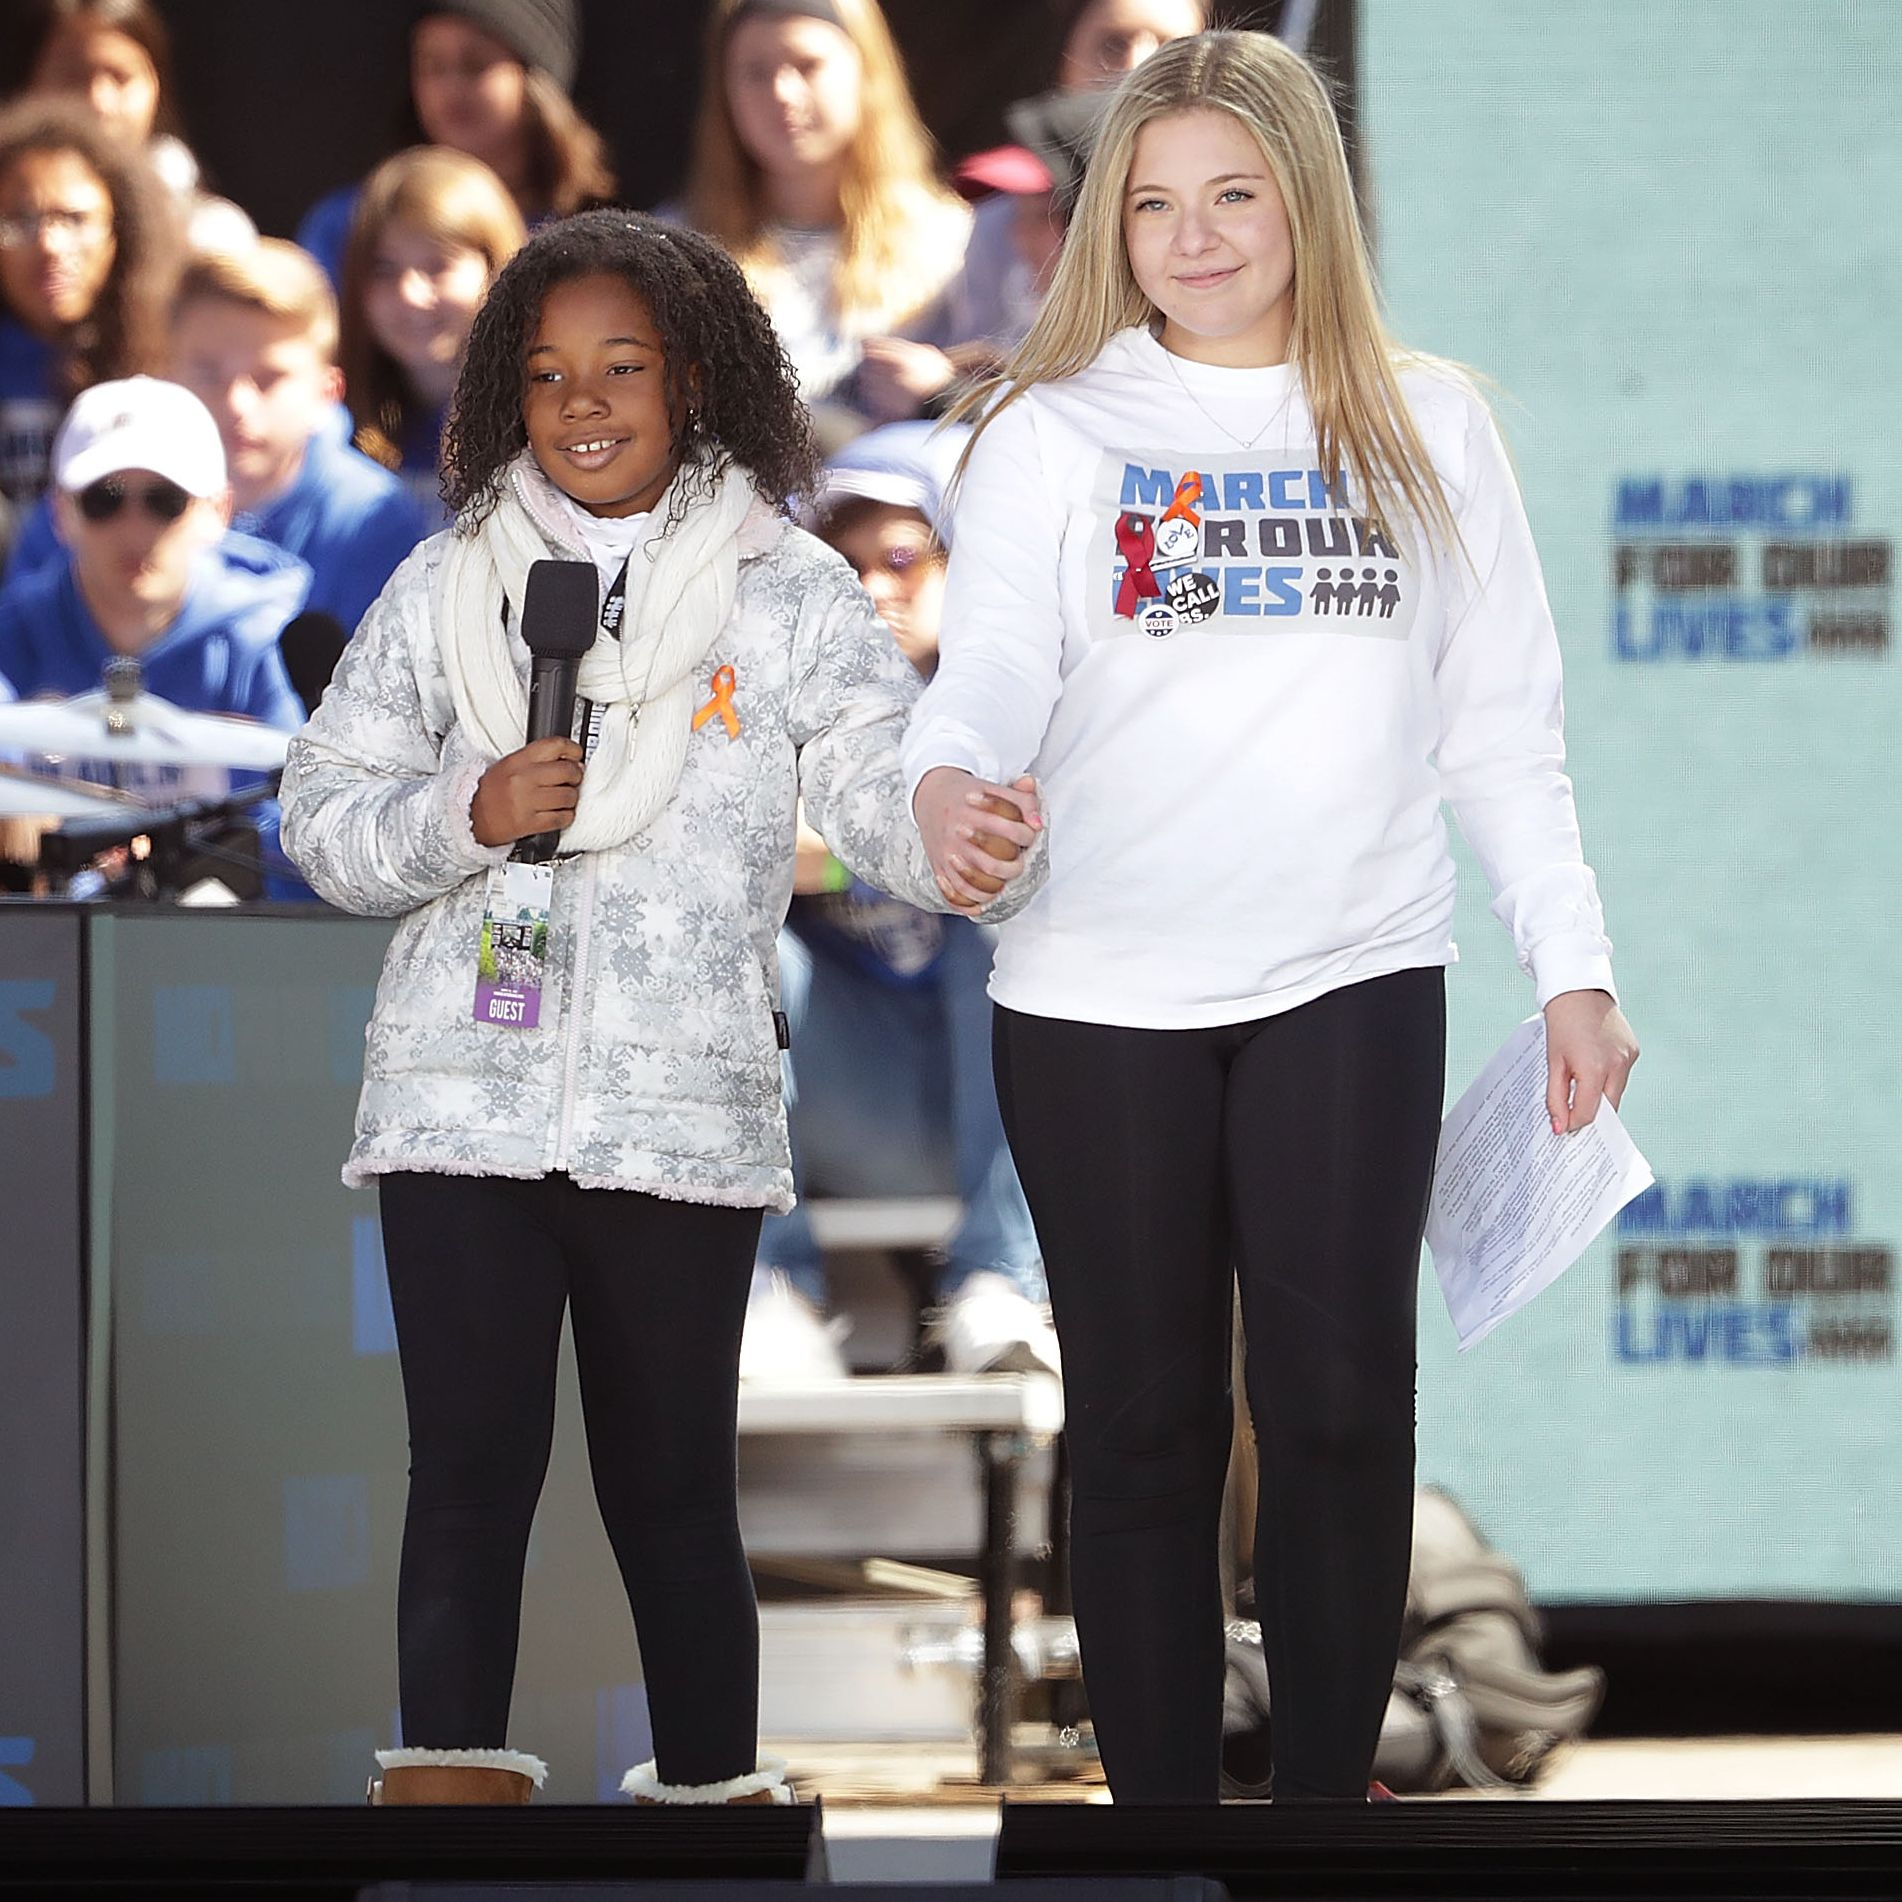 Martin Luther King Jr.'s granddaughter, Yolanda Renee King (left), joins Jaclyn Corin (right) on stage at the March for Our Lives in Washington, D.C.